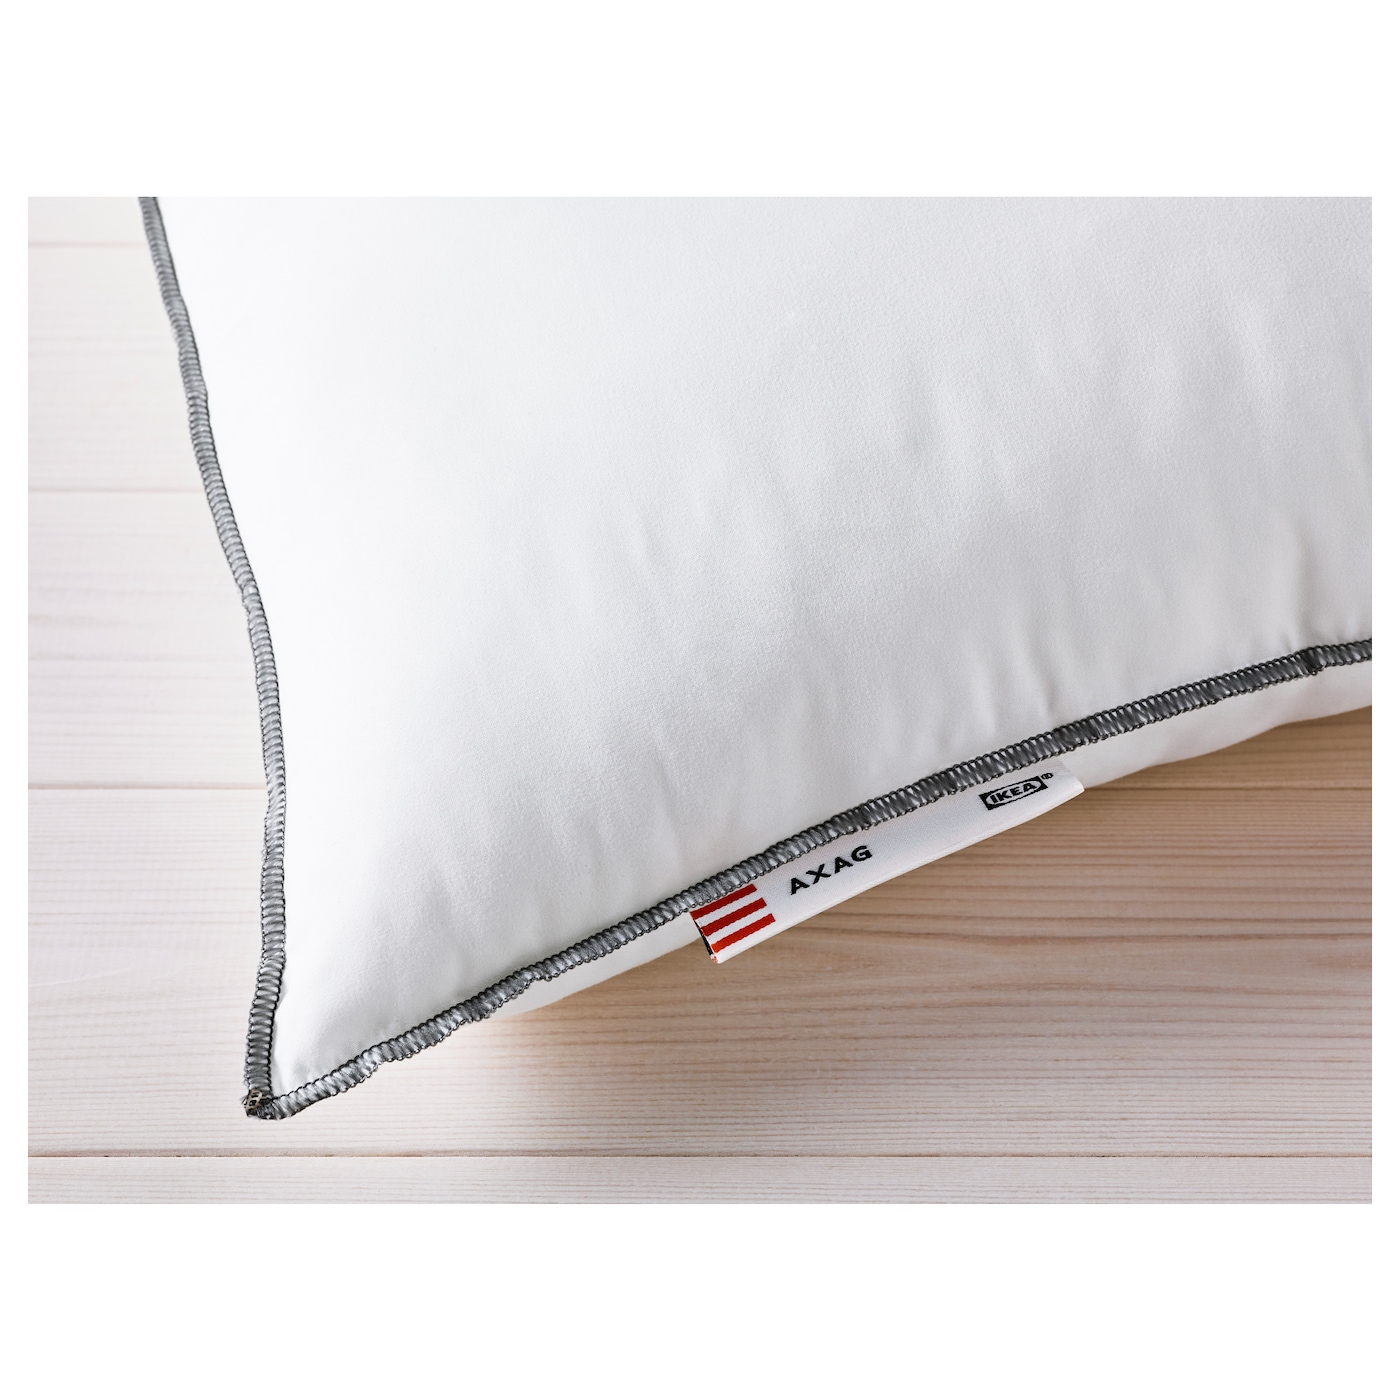 IKEA AXAG pillow, firmer Easy-care pillow with a brushed microfibre fabric for a soft feel.